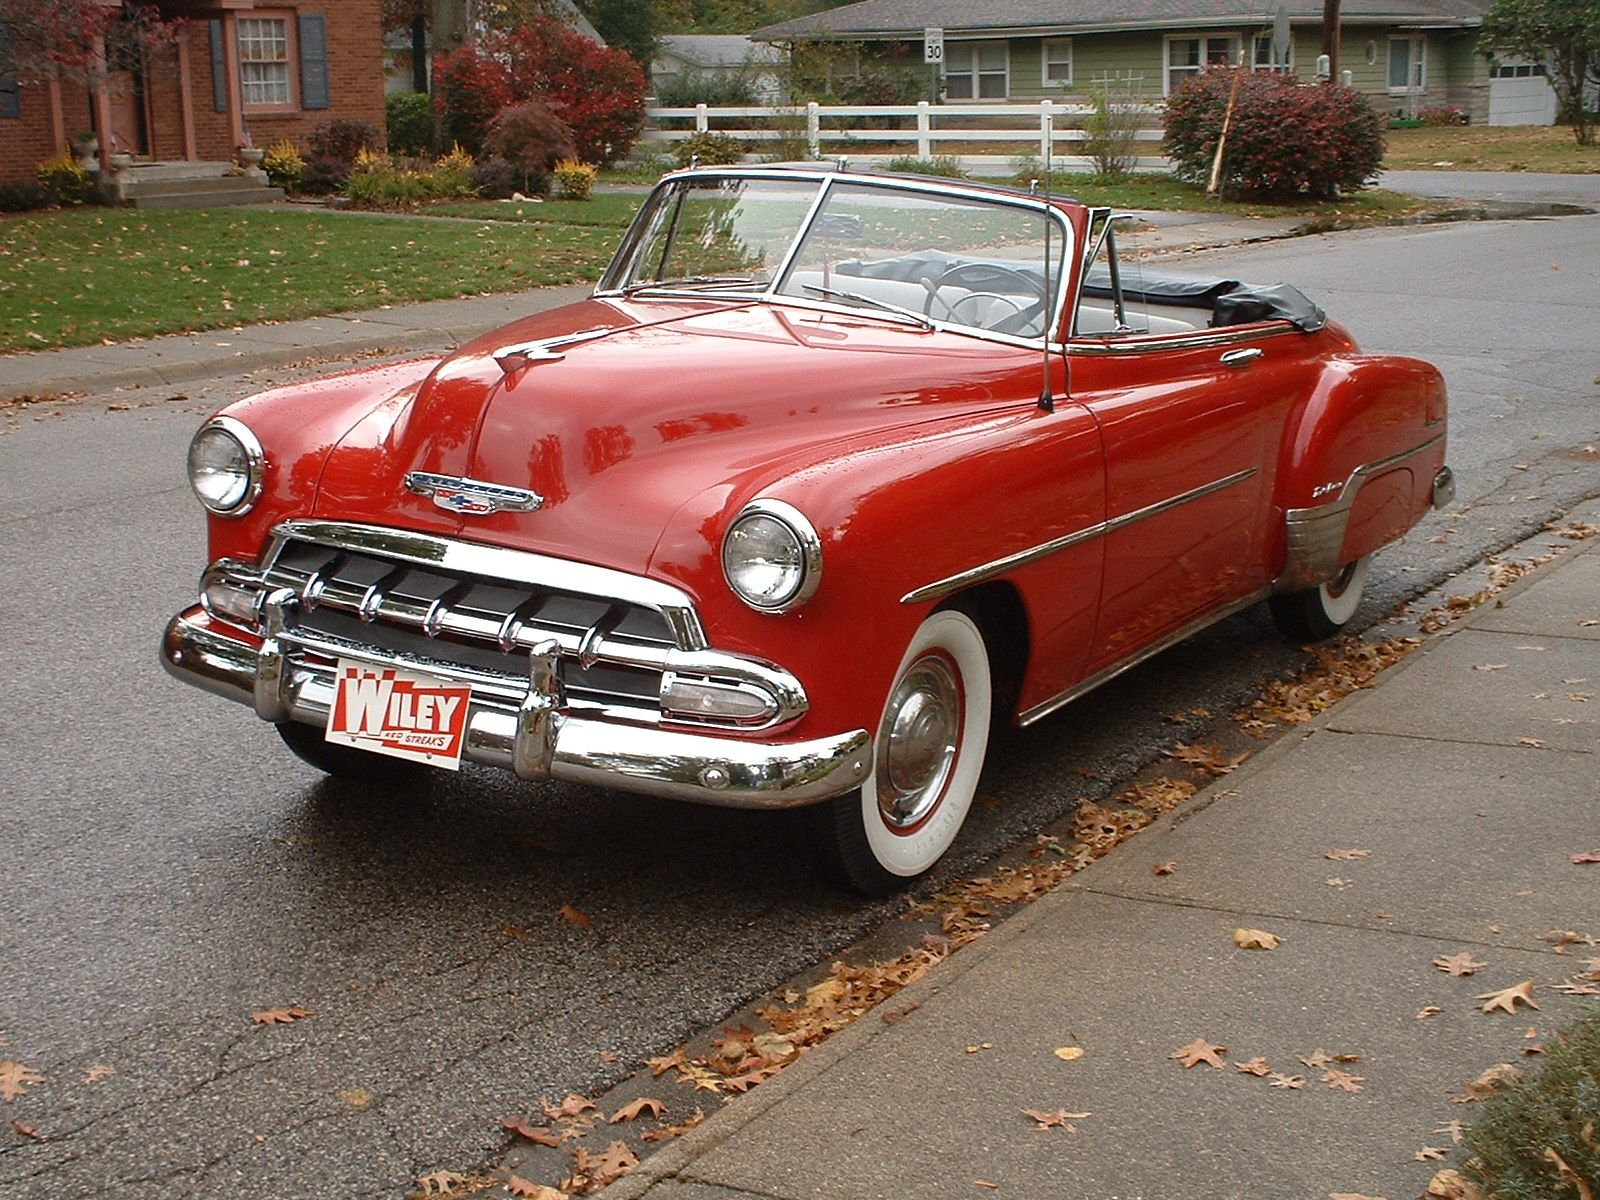 A terrific tomato red 1952 Chevrolet Convertible. #vintage #1950s ...